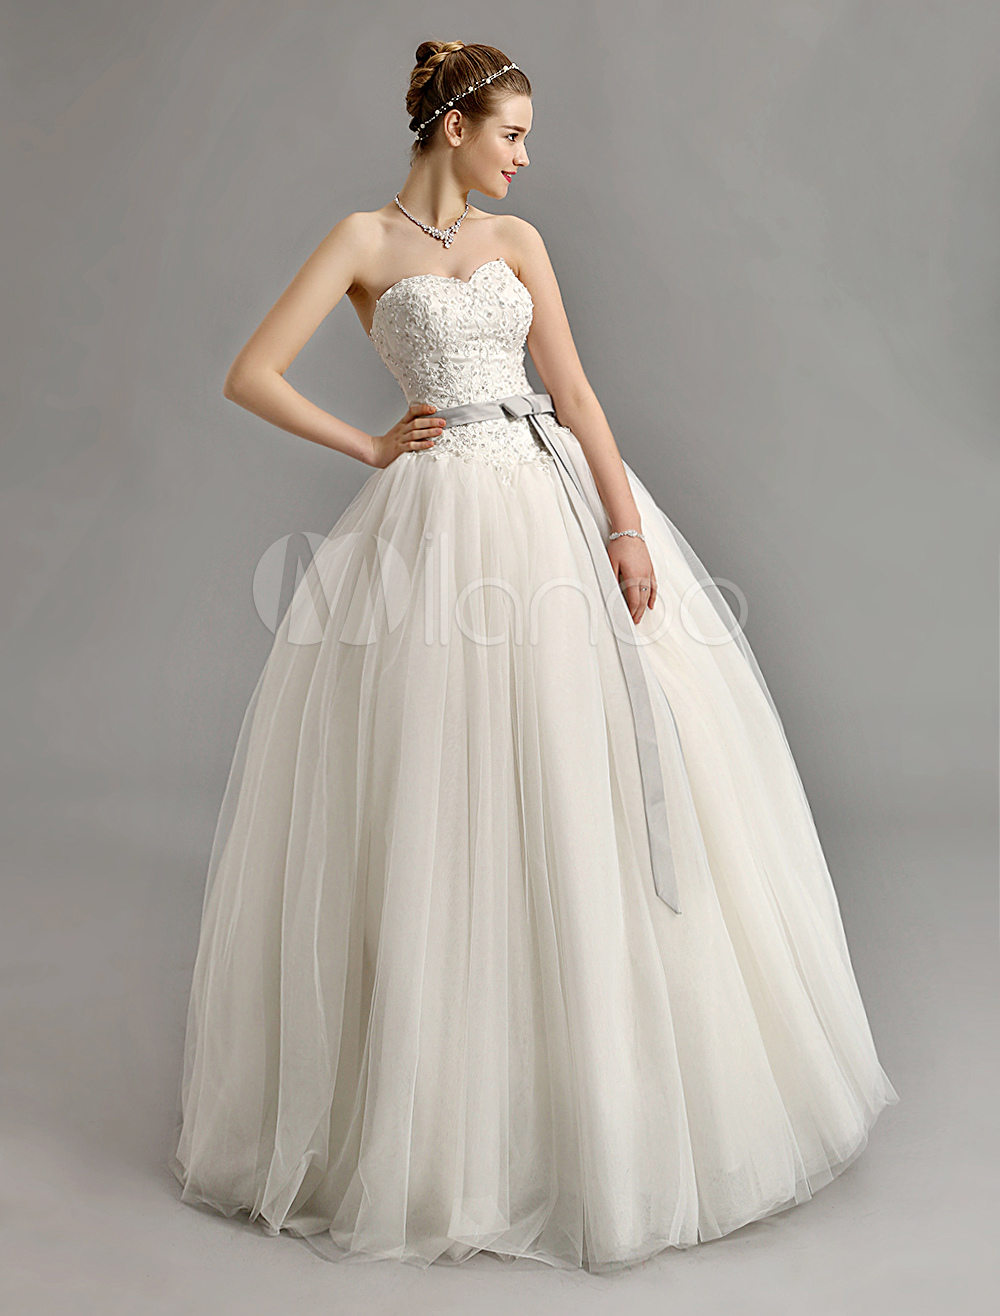 Ball Gown Wedding Dresses With Color : Wholesale sweetheart ball gown wedding dress with colored